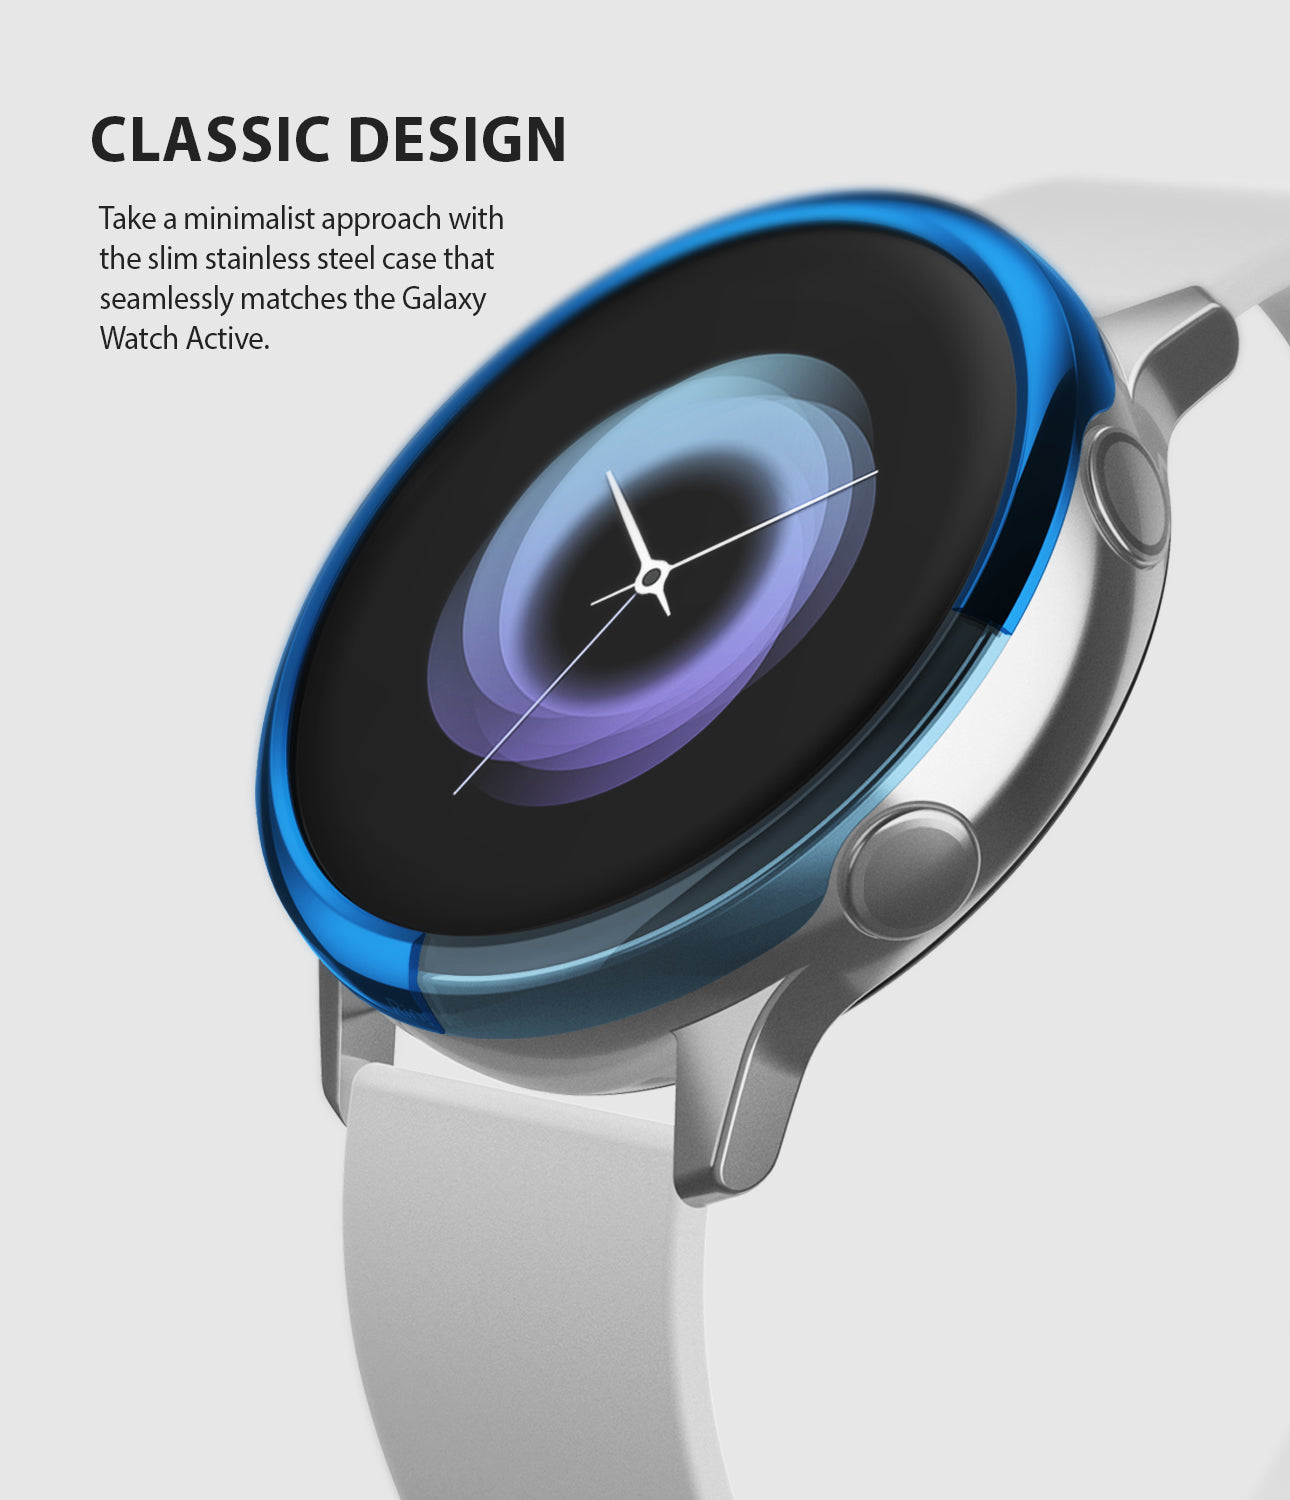 ringke bezel styling for galaxy watch active stainless steel minimalistic design to seamlessly match the device